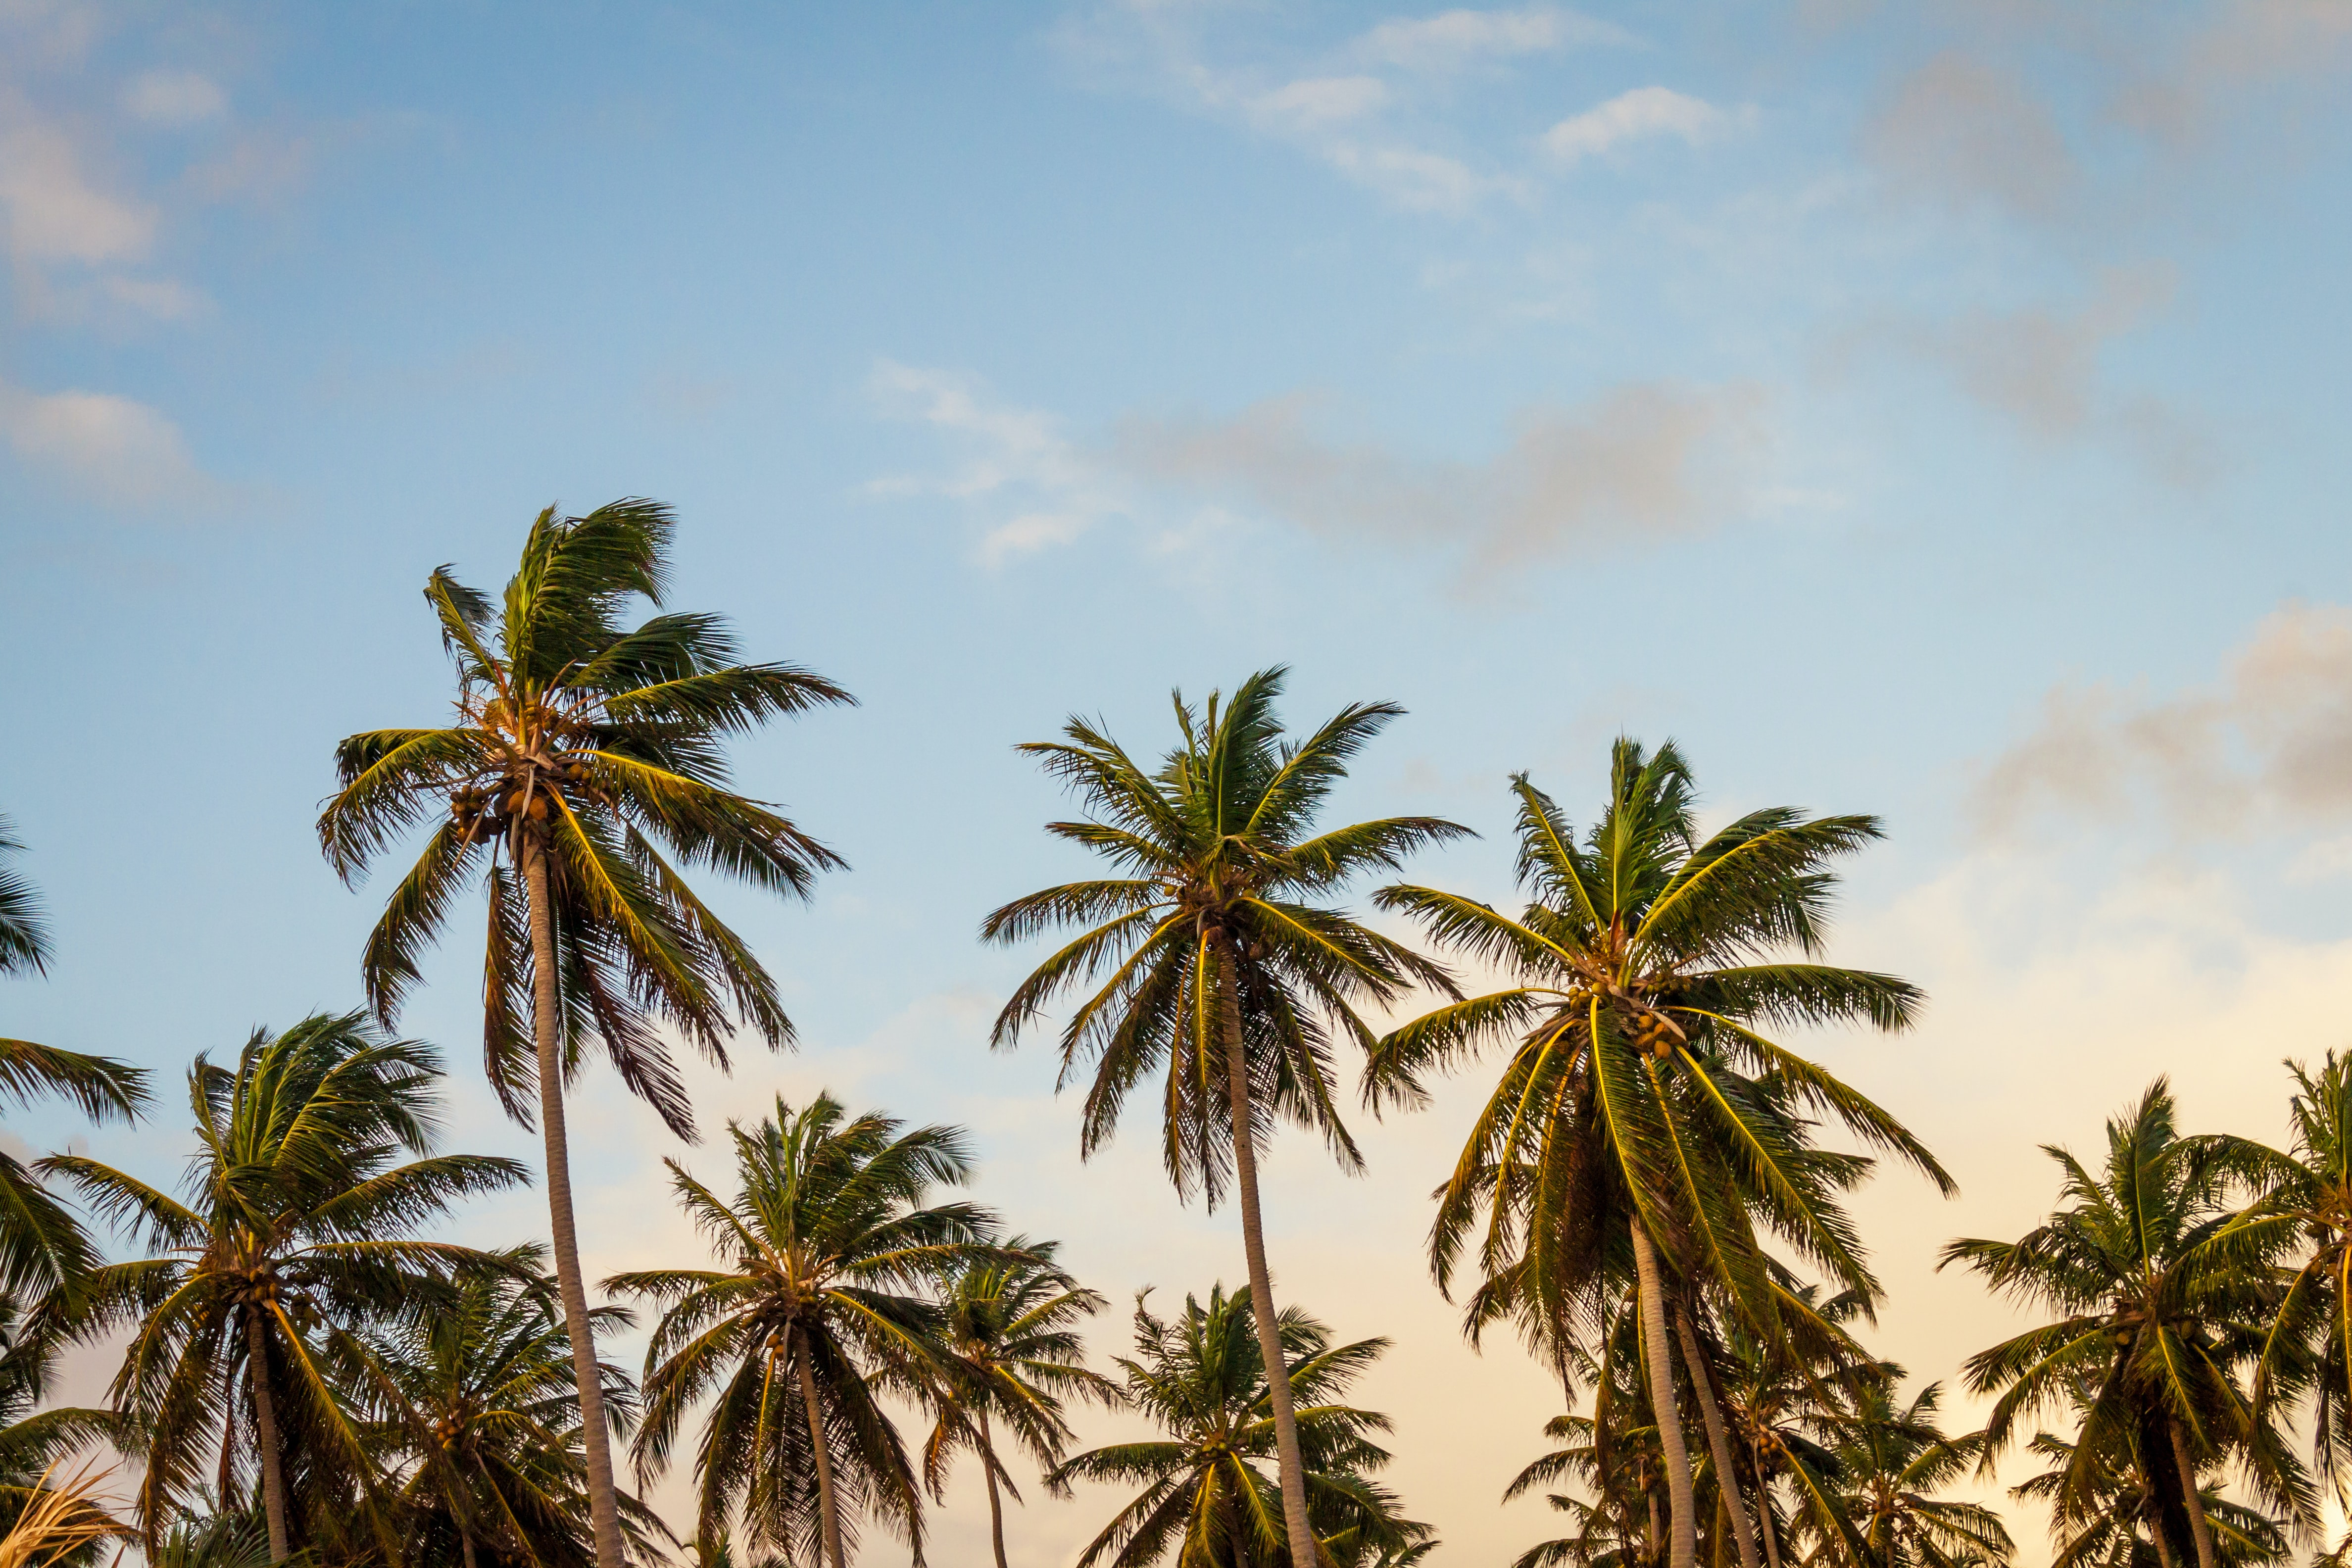 coconut trees under cloudy sky during daytime